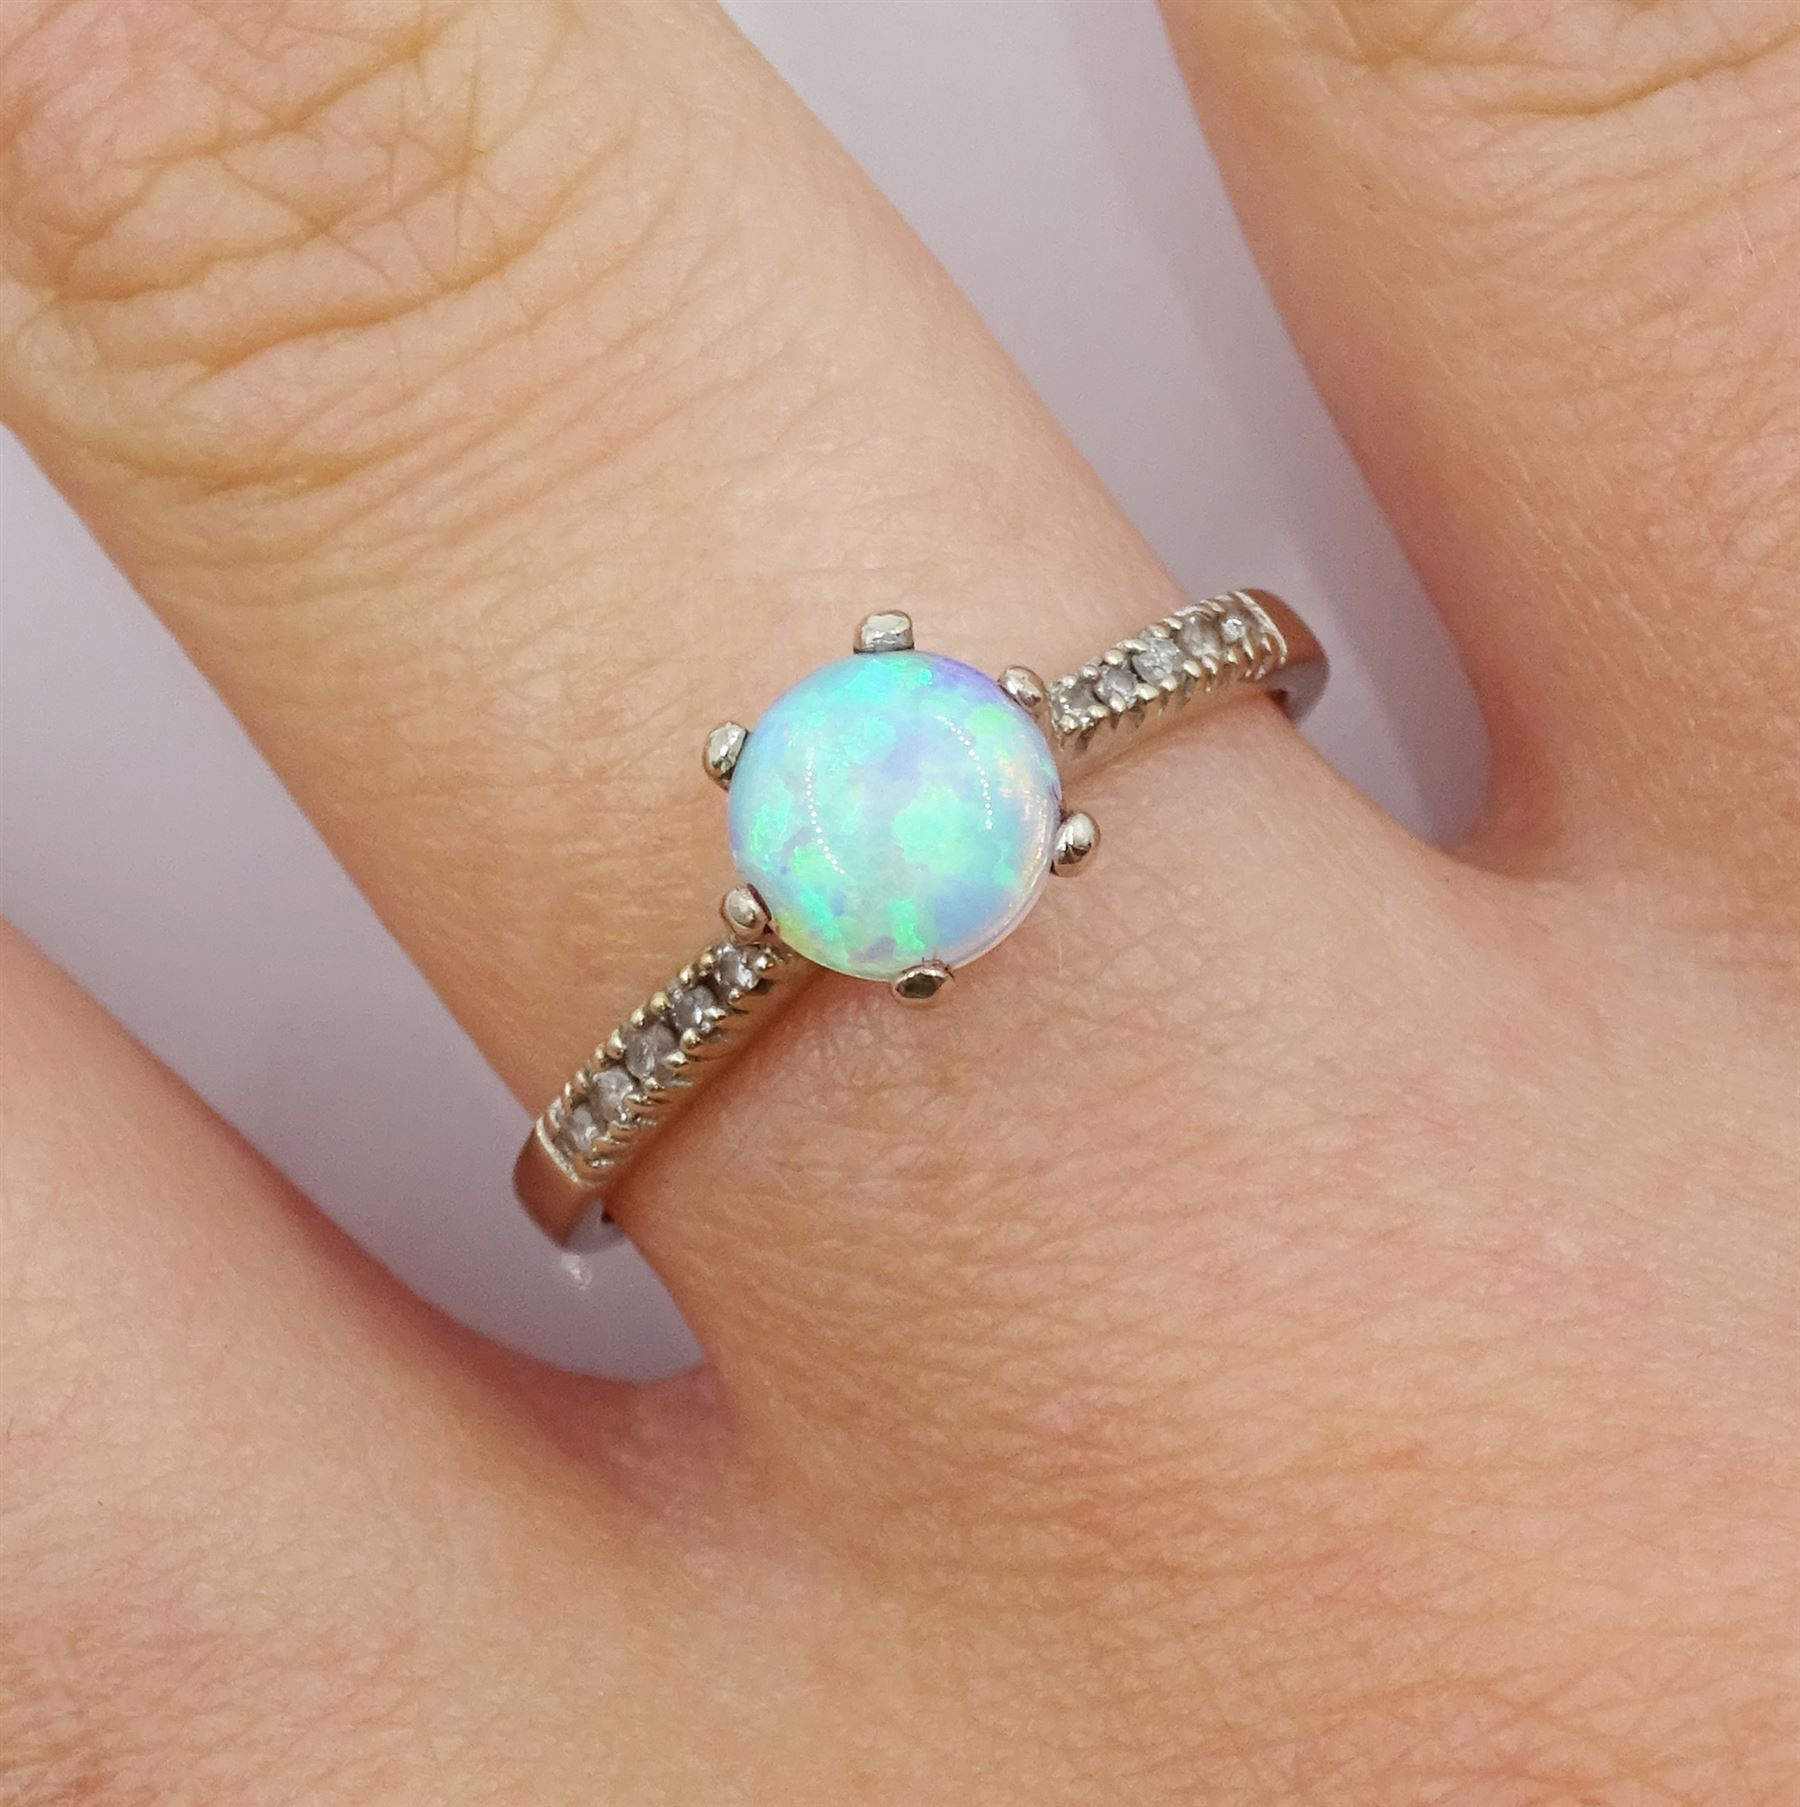 9ct white gold opal ring - Image 2 of 4